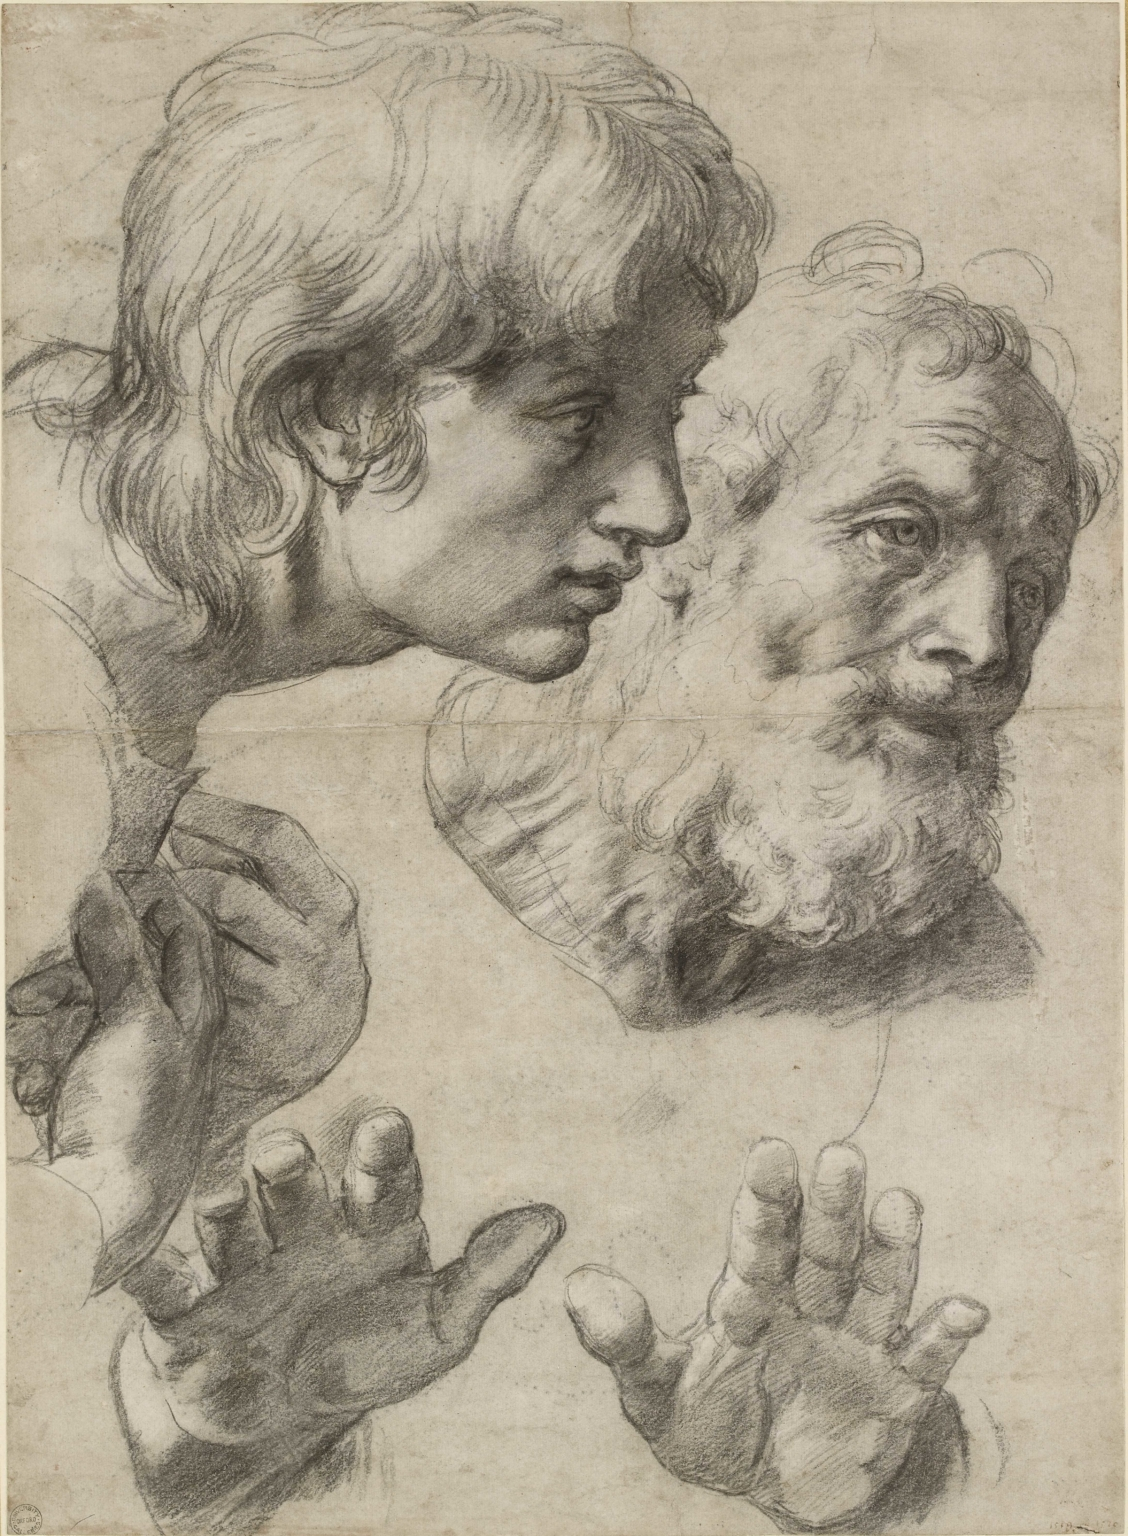 Raphael, The heads and hands of two apostles, c. 1519–20. Black chalk with over-pounced underdrawing with some white heightening, 49.9 x 36.4 cm. © Ashmolean Museum, University of Oxford